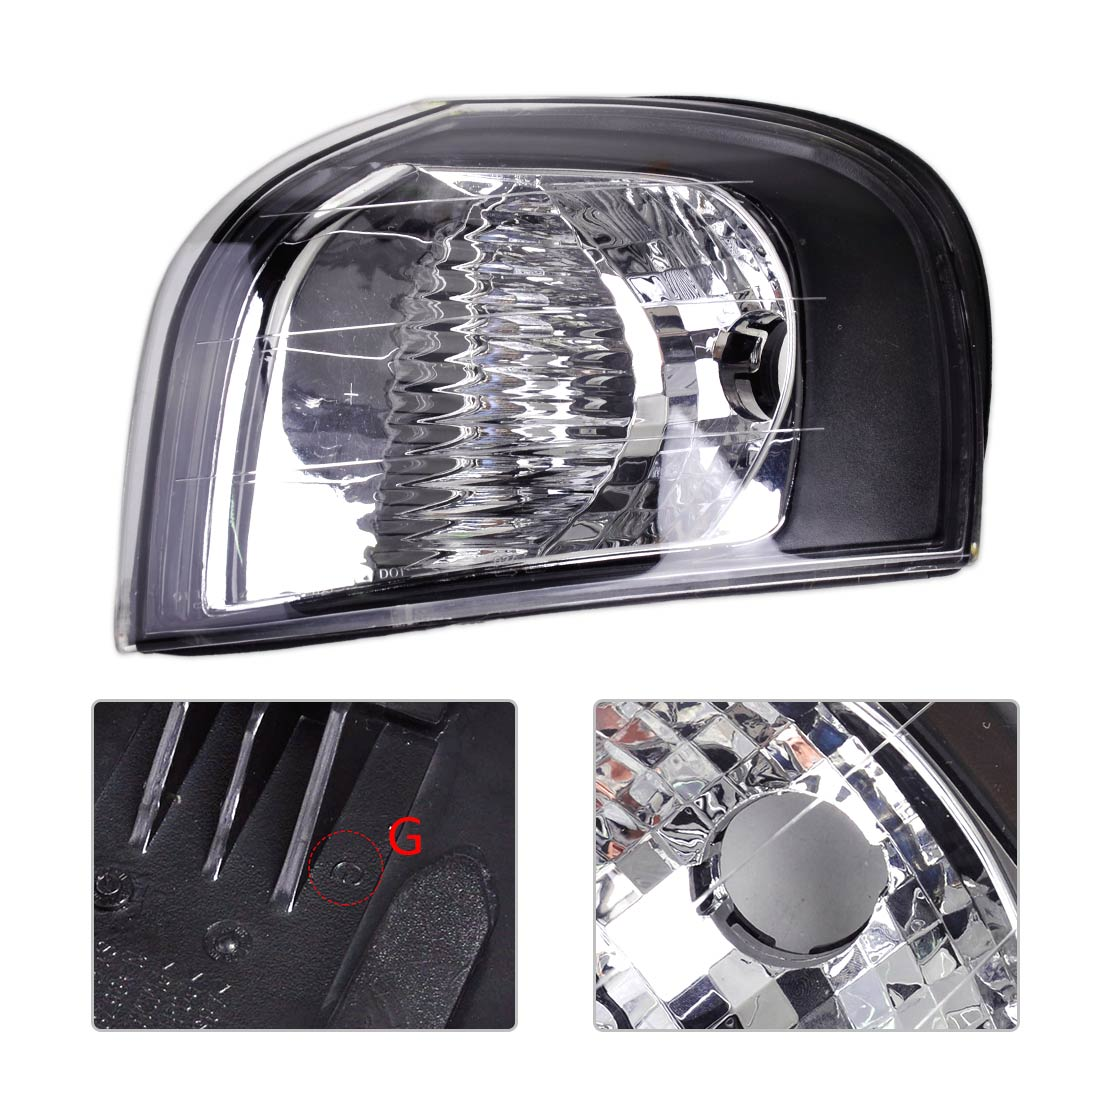 beler Left Turn Signal Corner Light Lamp fit for Volvo S80 1999 2000 2001 2002 2003 2004 2005 2006 LHD 30655422